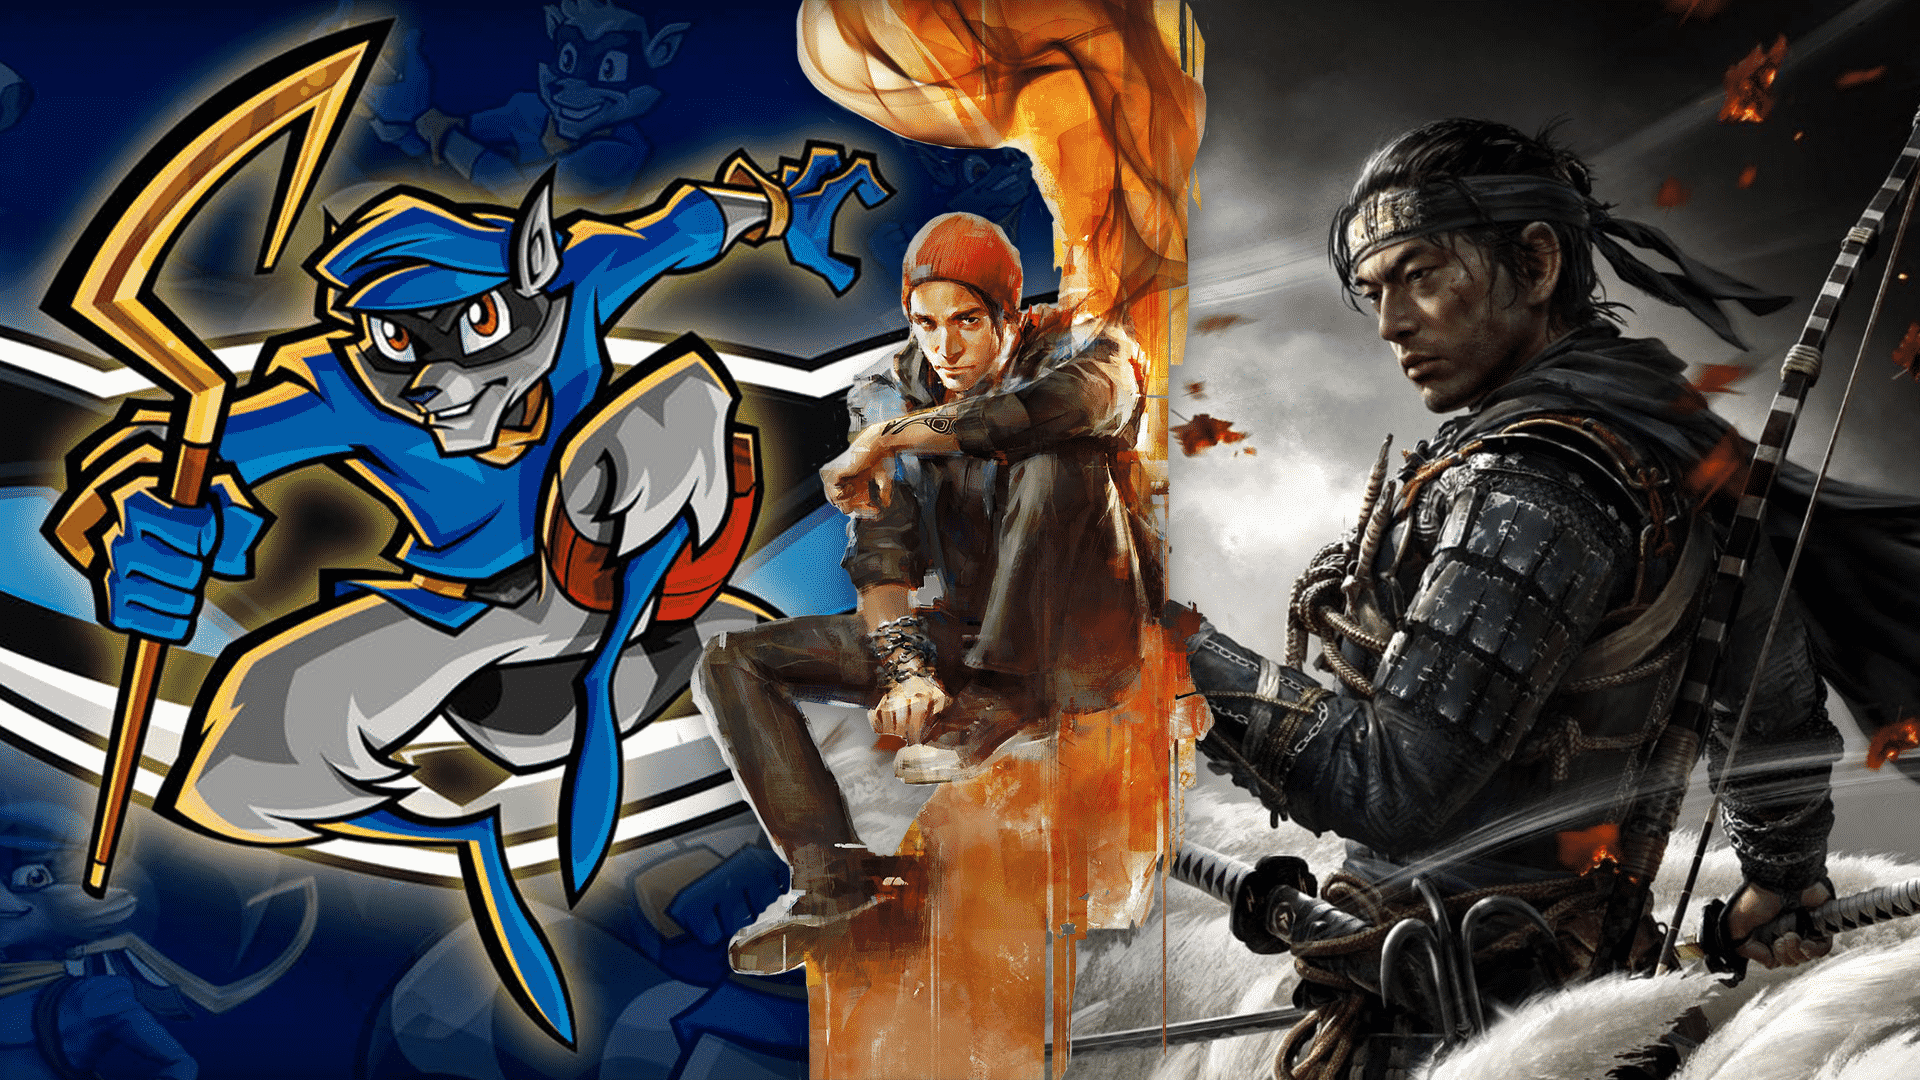 Ghost of Tsushima, Ghost of Tsushima 2, Infamous, Sly Cooper, Sucker Punch